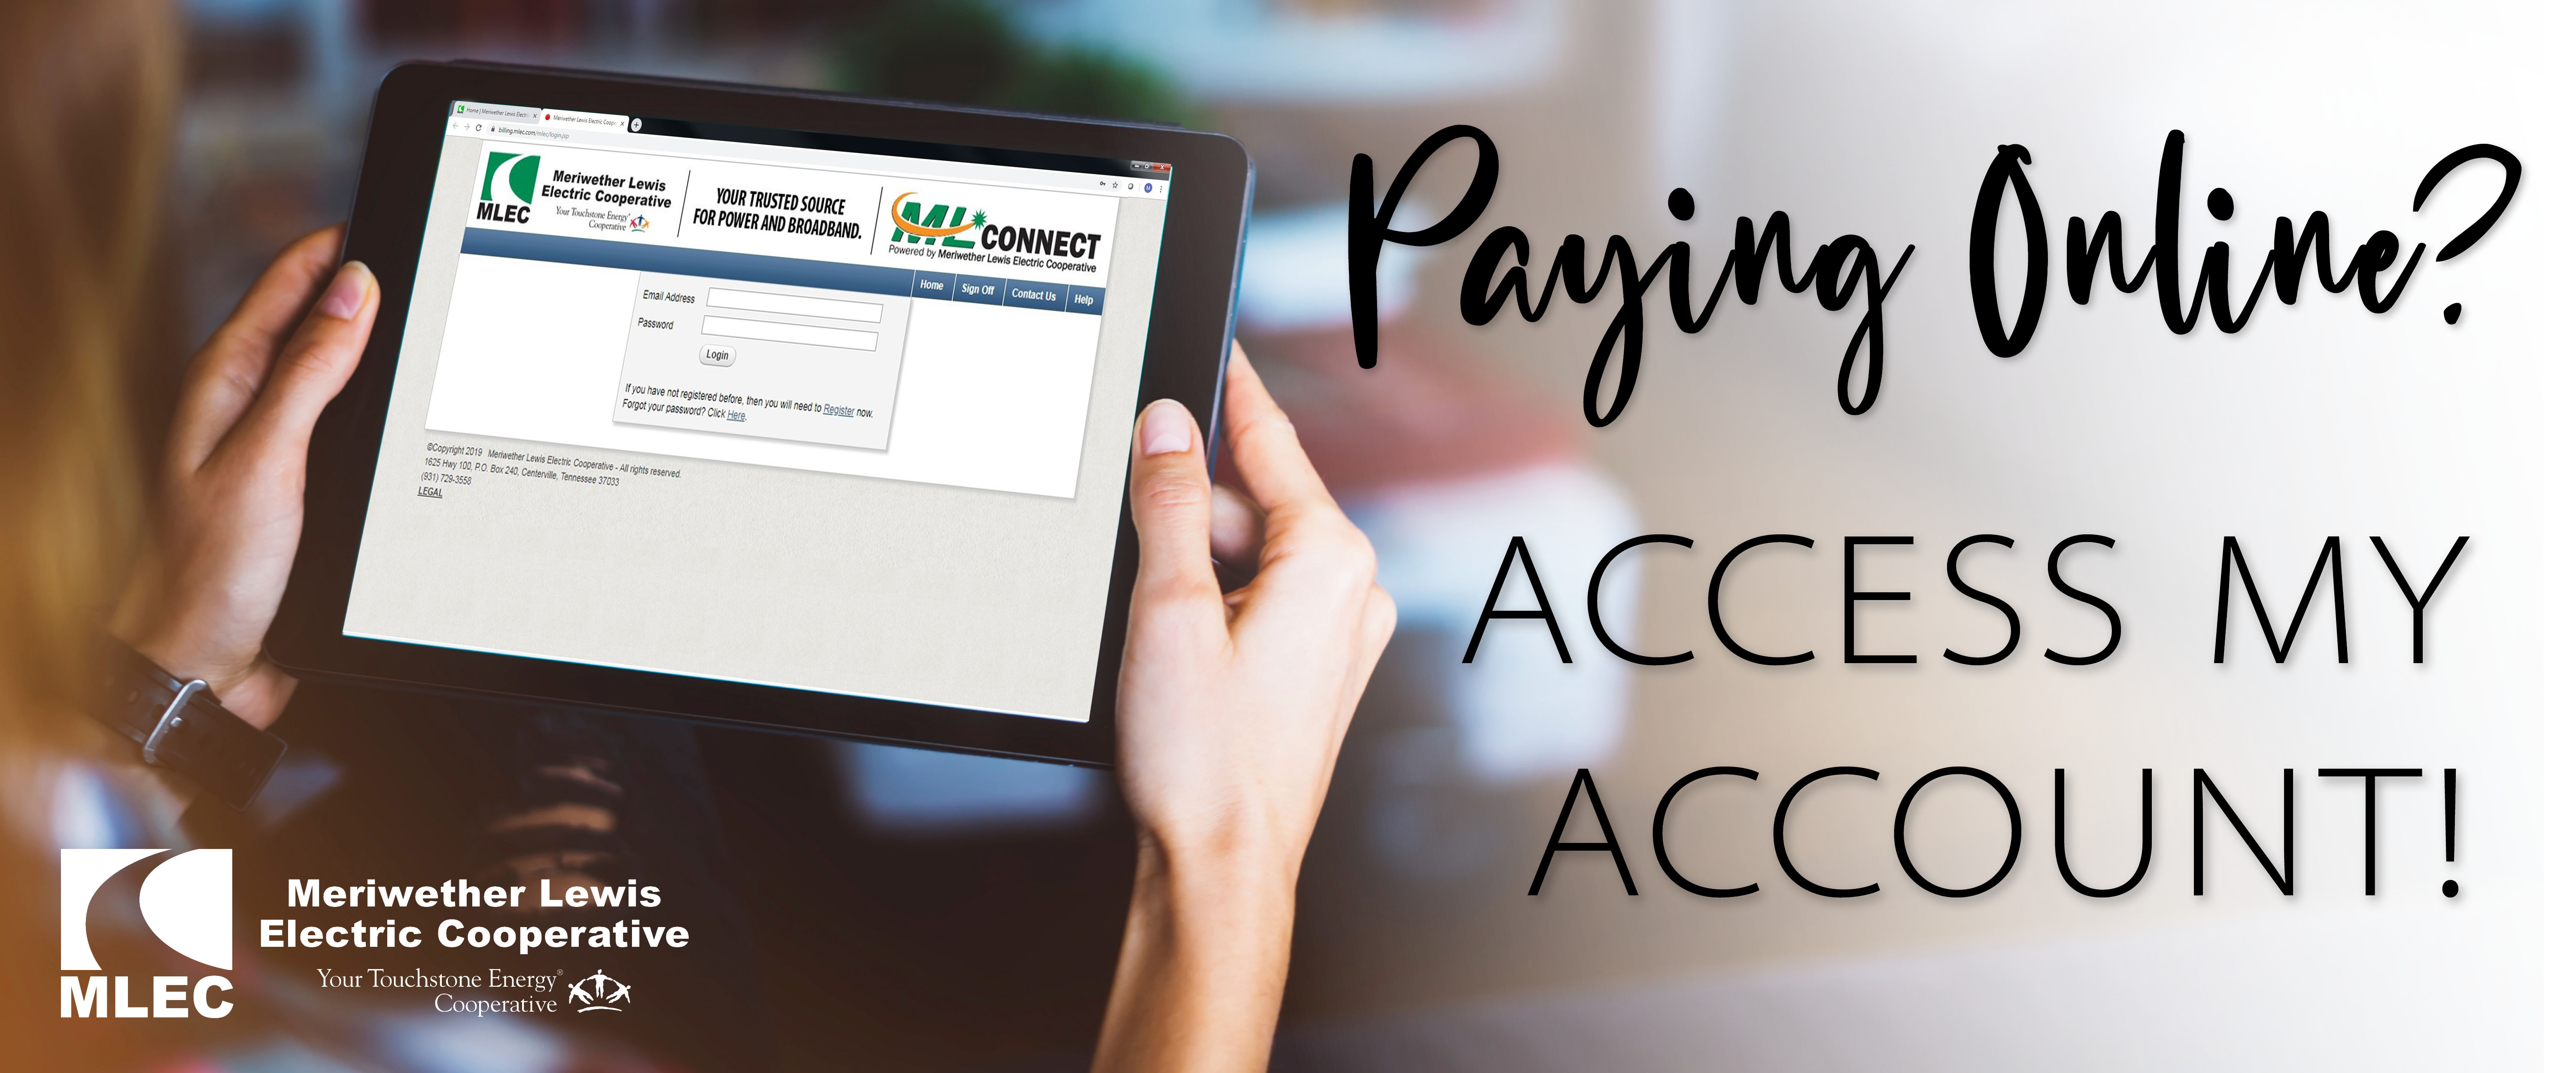 Paying online? Access your account!